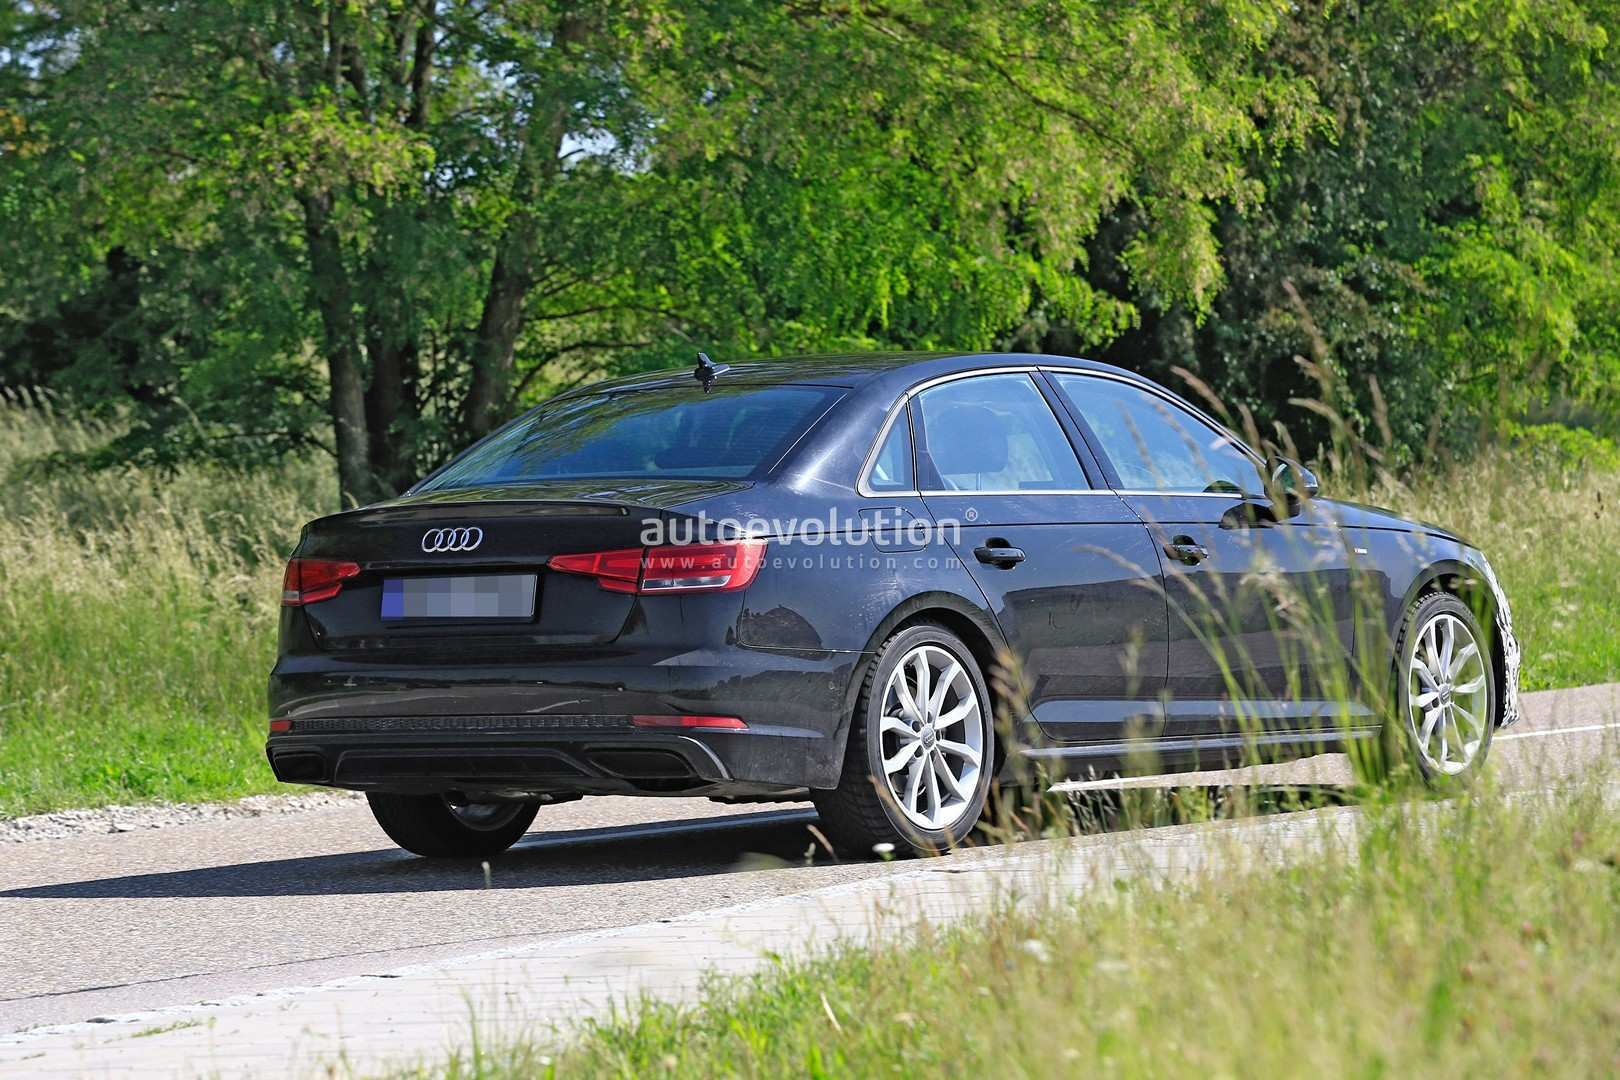 63 Concept of 2020 Audi A4 Pictures with 2020 Audi A4